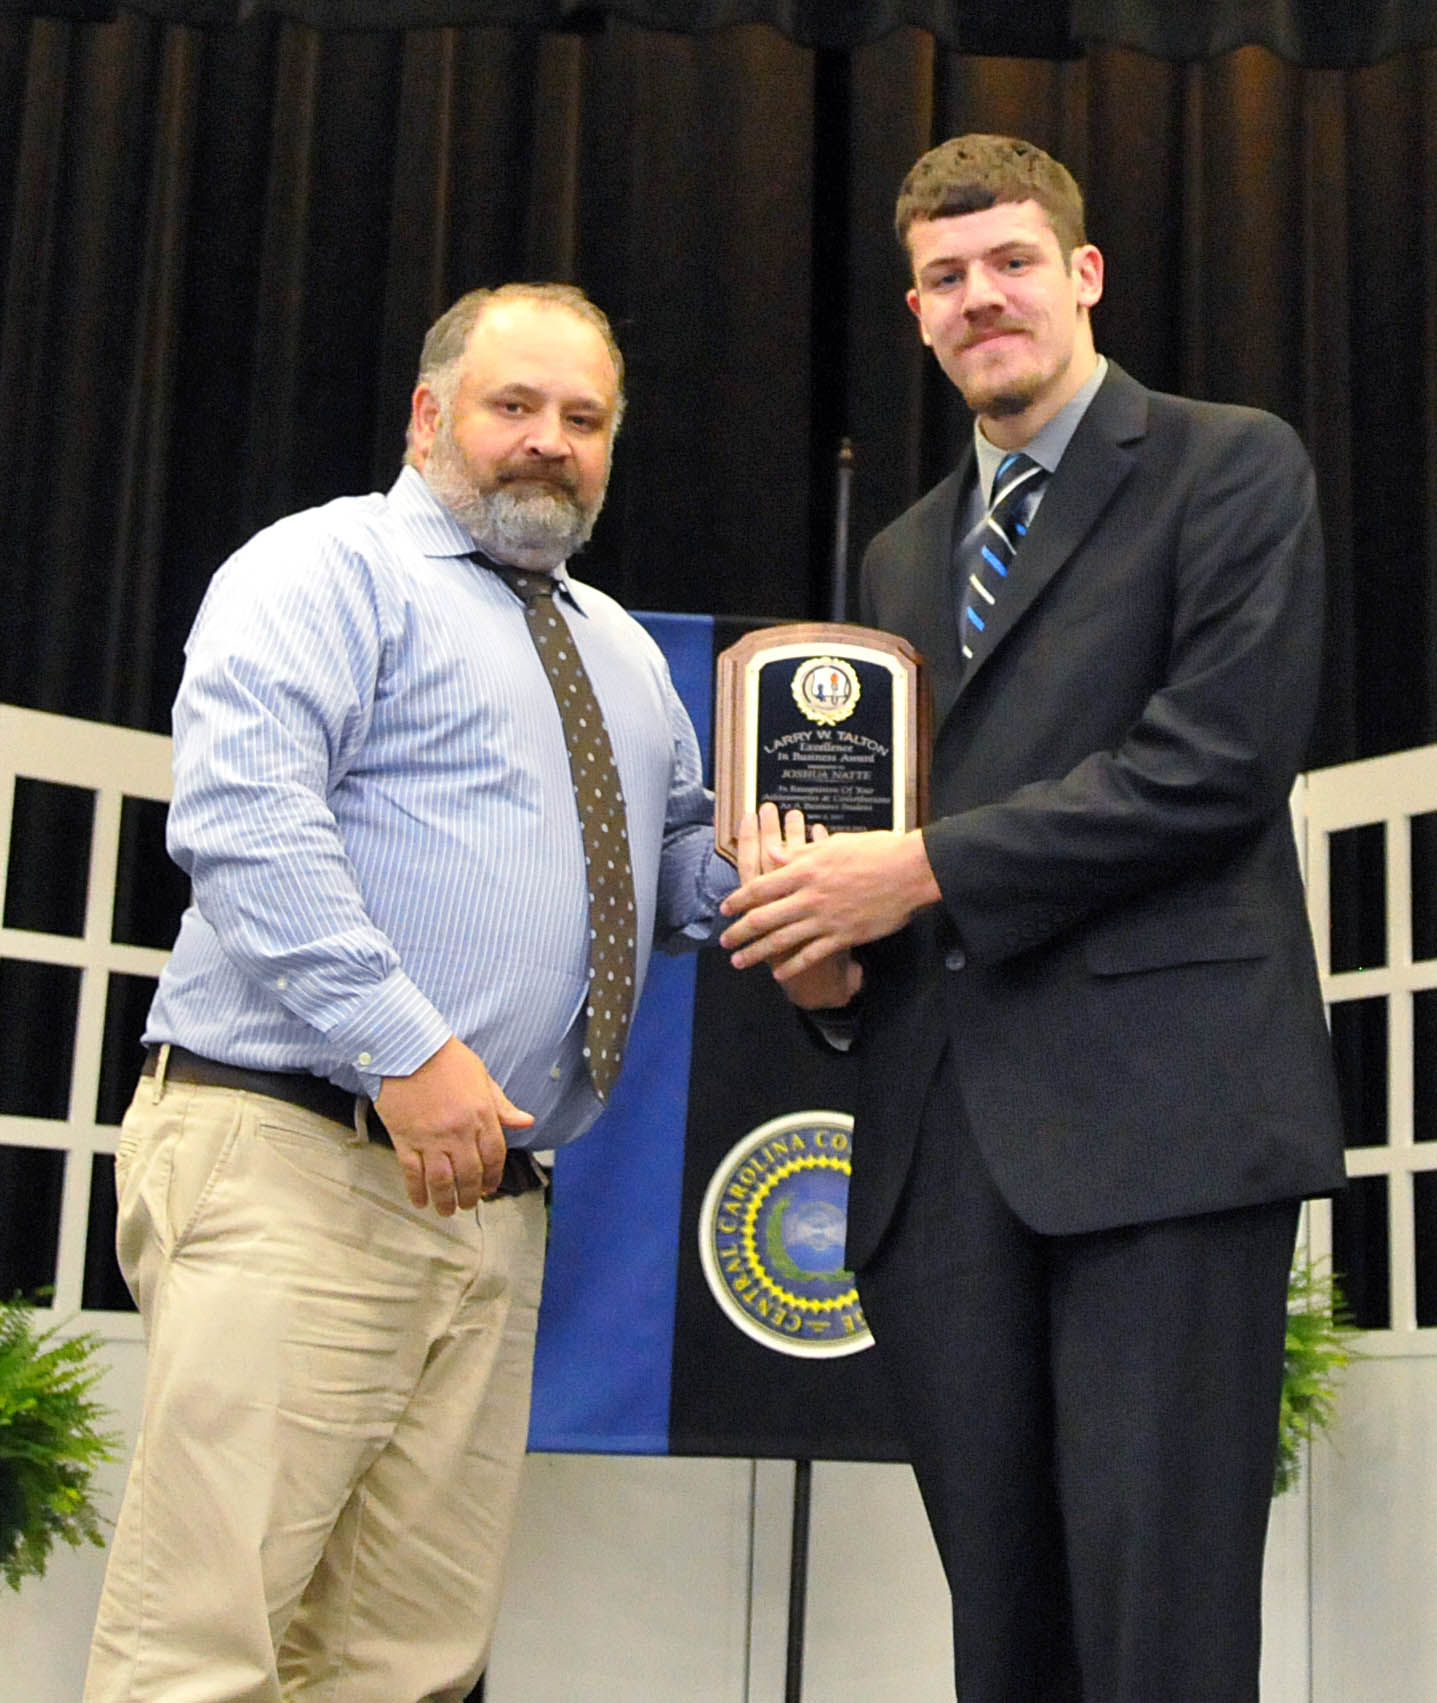 Click to enlarge,  Joshua Natte (right) is recipient of Central Carolina Community College's Larry Talton Excellence in Business Award. Presenting the award to Natte is Michael Fann, CCCC Business Technologies - Lead Instructor.